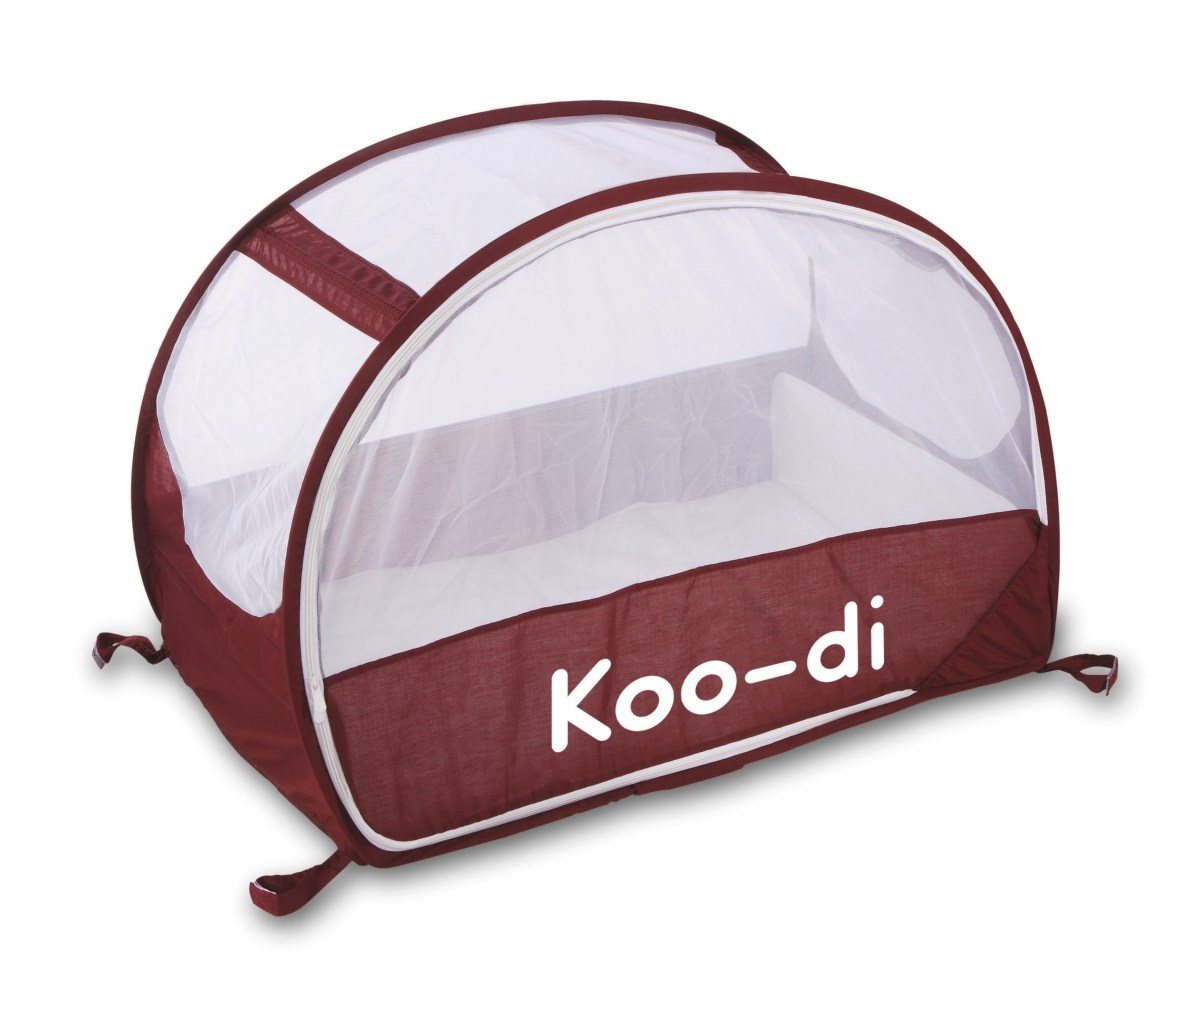 Koo-di Pop Up Travel Bubble Cot - Aubergine & White (KD111/35)